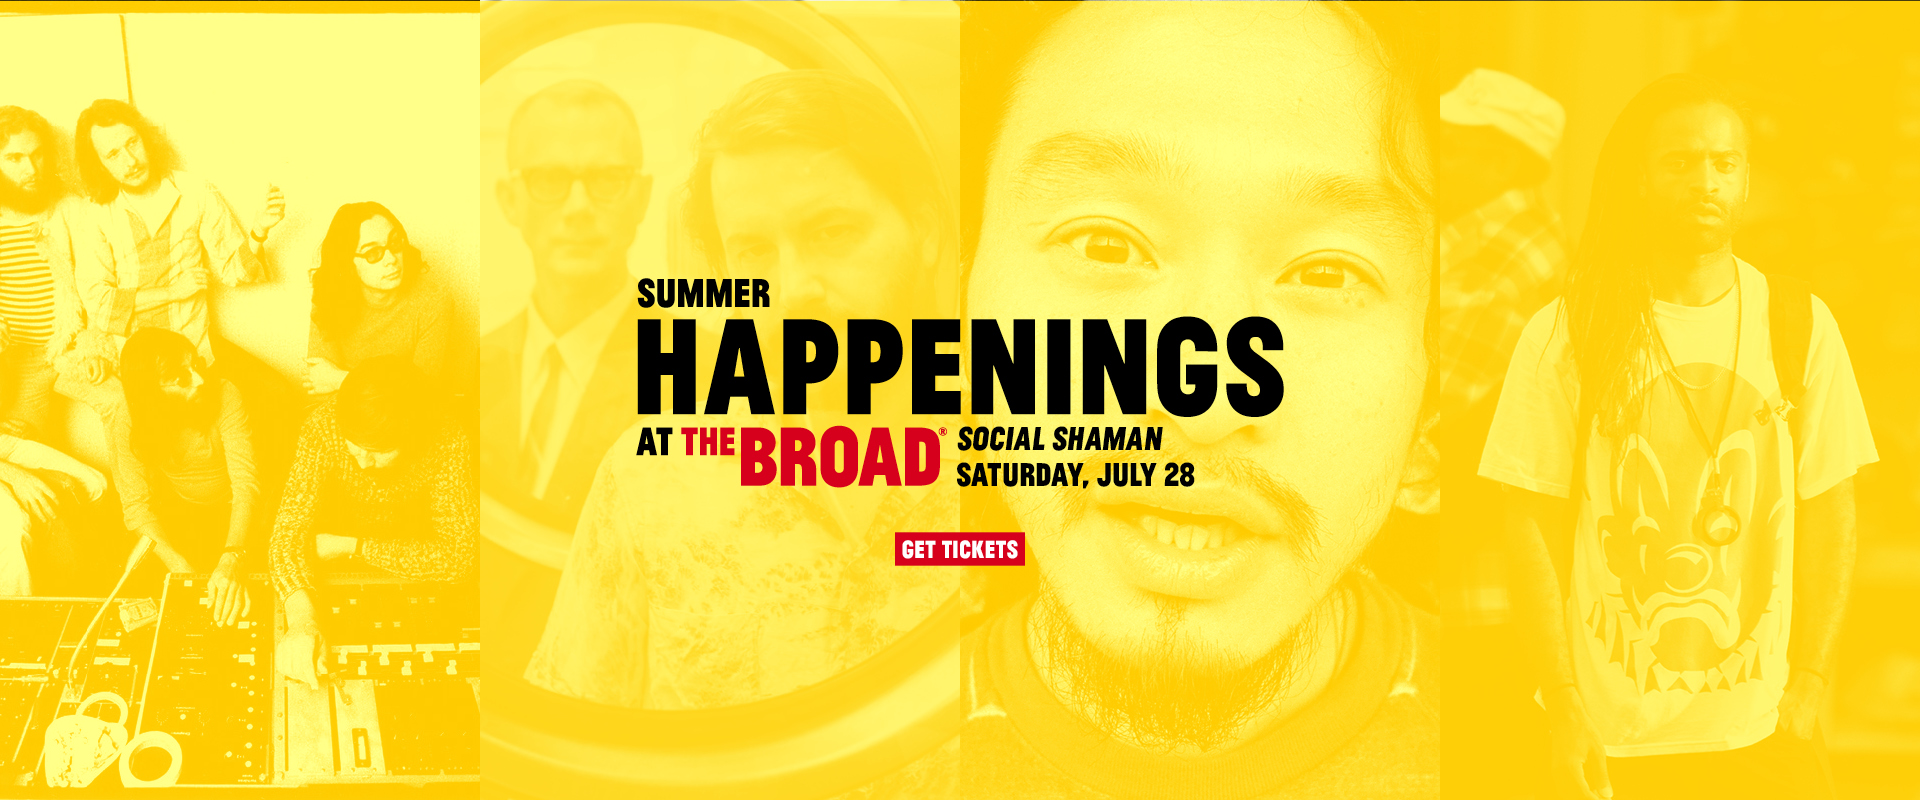 2018 Summer Happenings at The Broad continue July 28